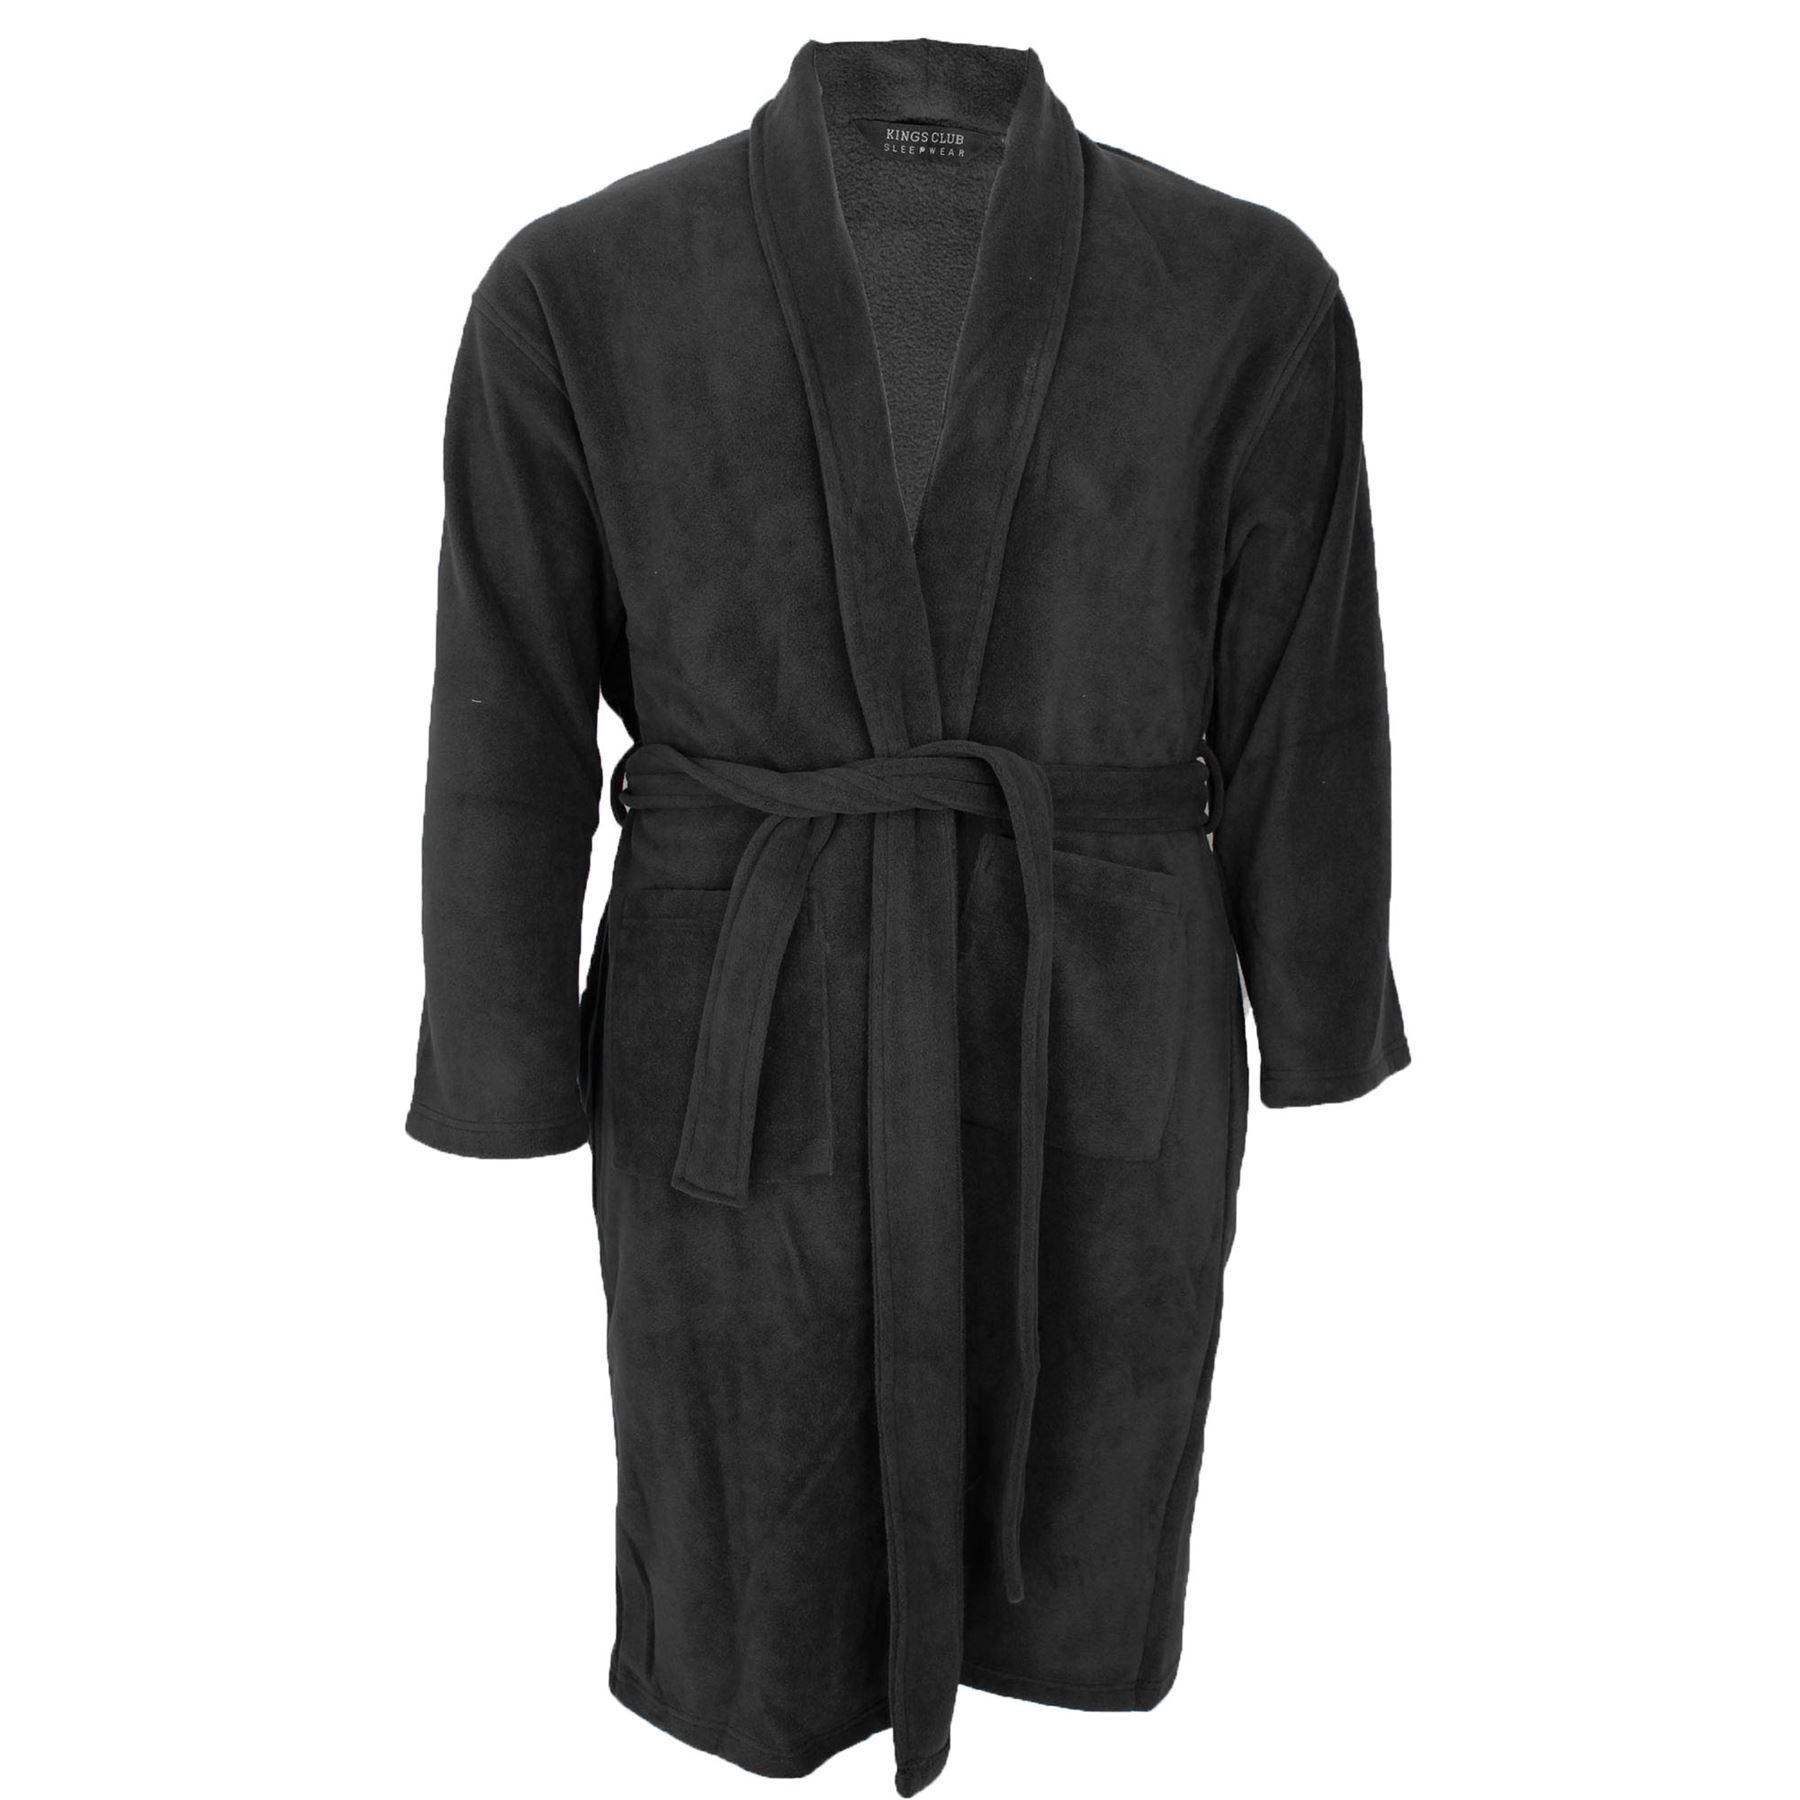 mens kings club big size fleece dressing gown bath robe 3xl 4xl 5xl 6xl 7xl 8xl ebay. Black Bedroom Furniture Sets. Home Design Ideas